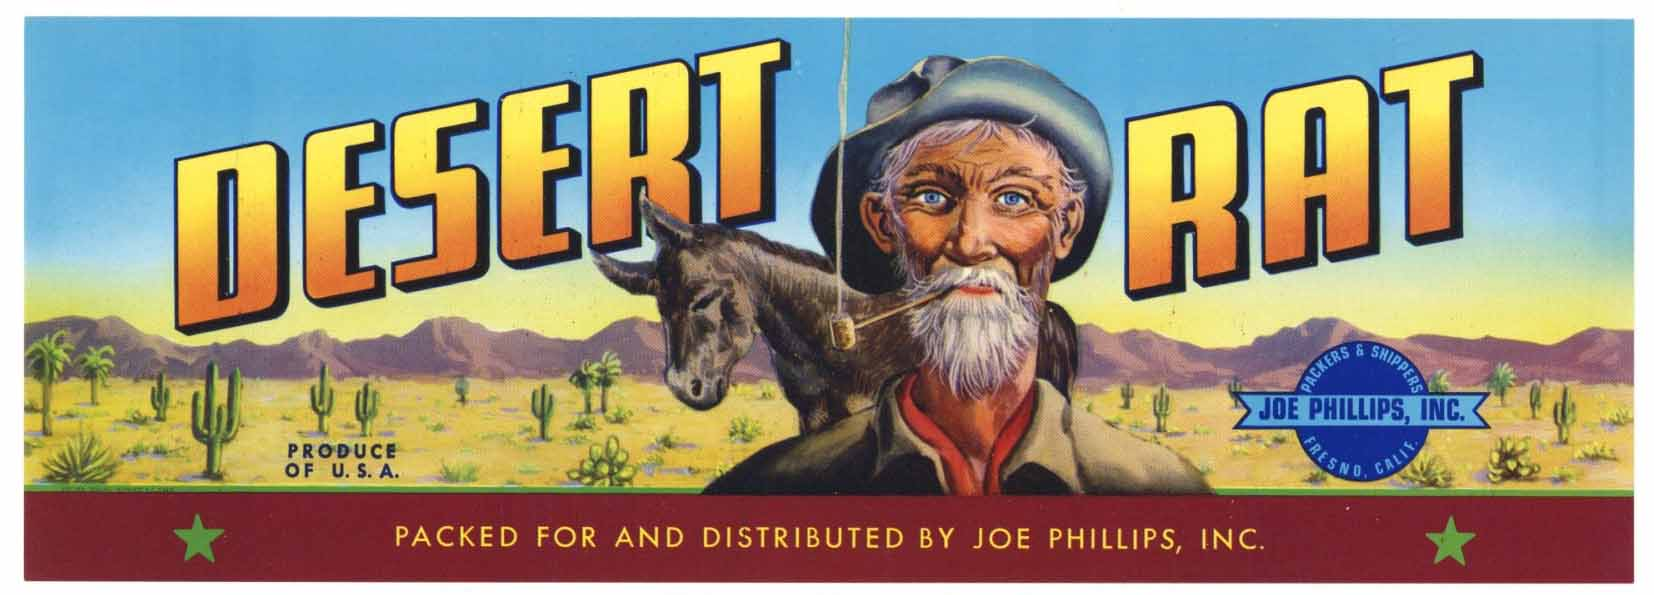 DESERT RAT Brand Vintage Fruit Crate Label (LL1075)